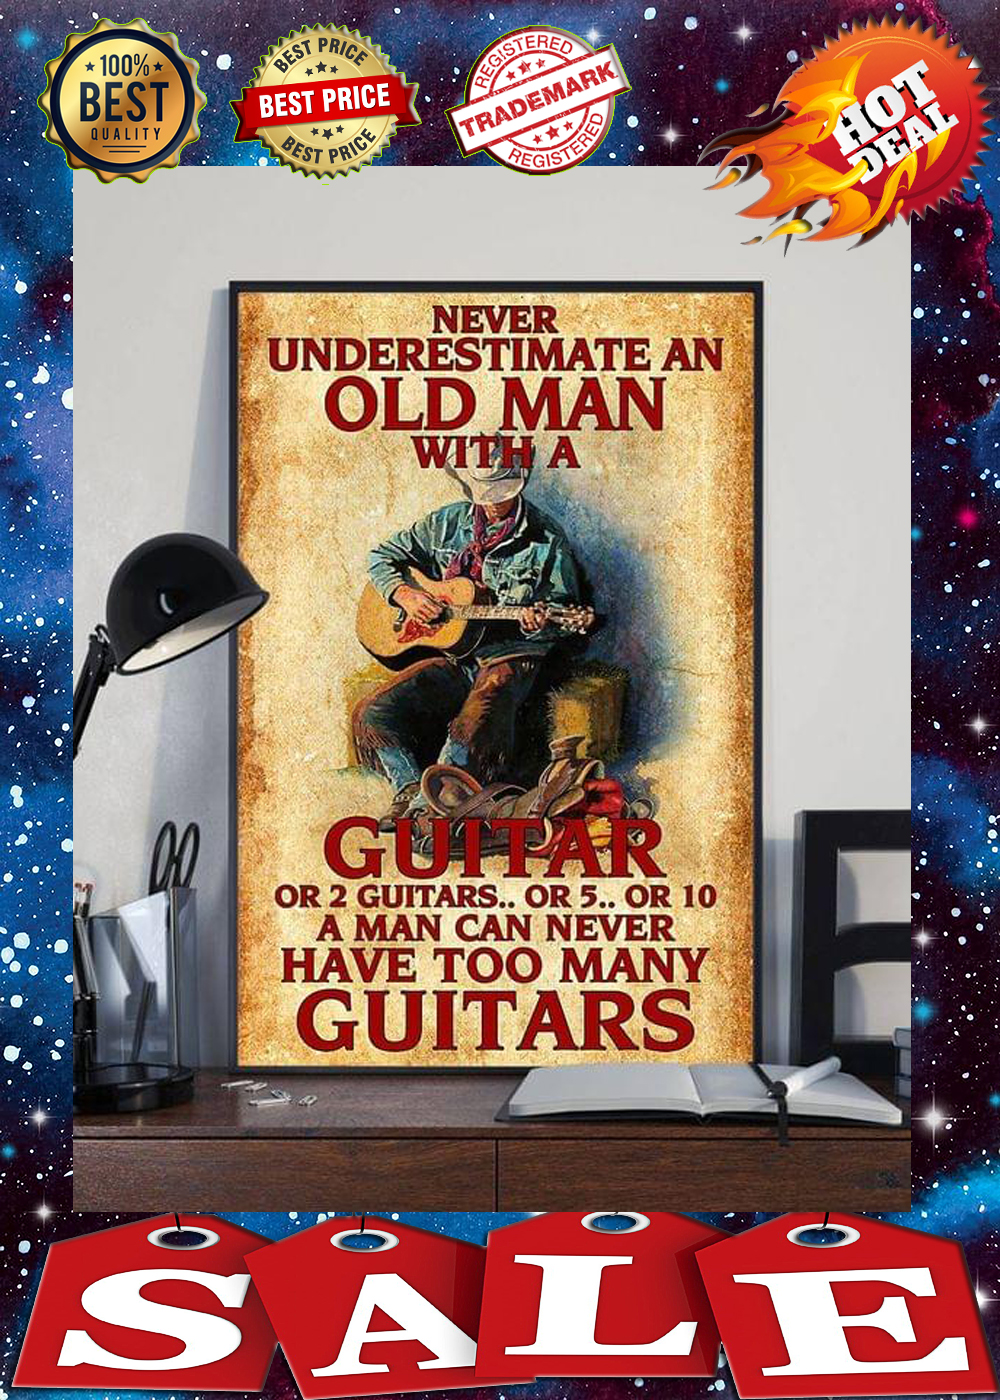 Never underestimate an old man with a guitar or 2 guitars poster 3